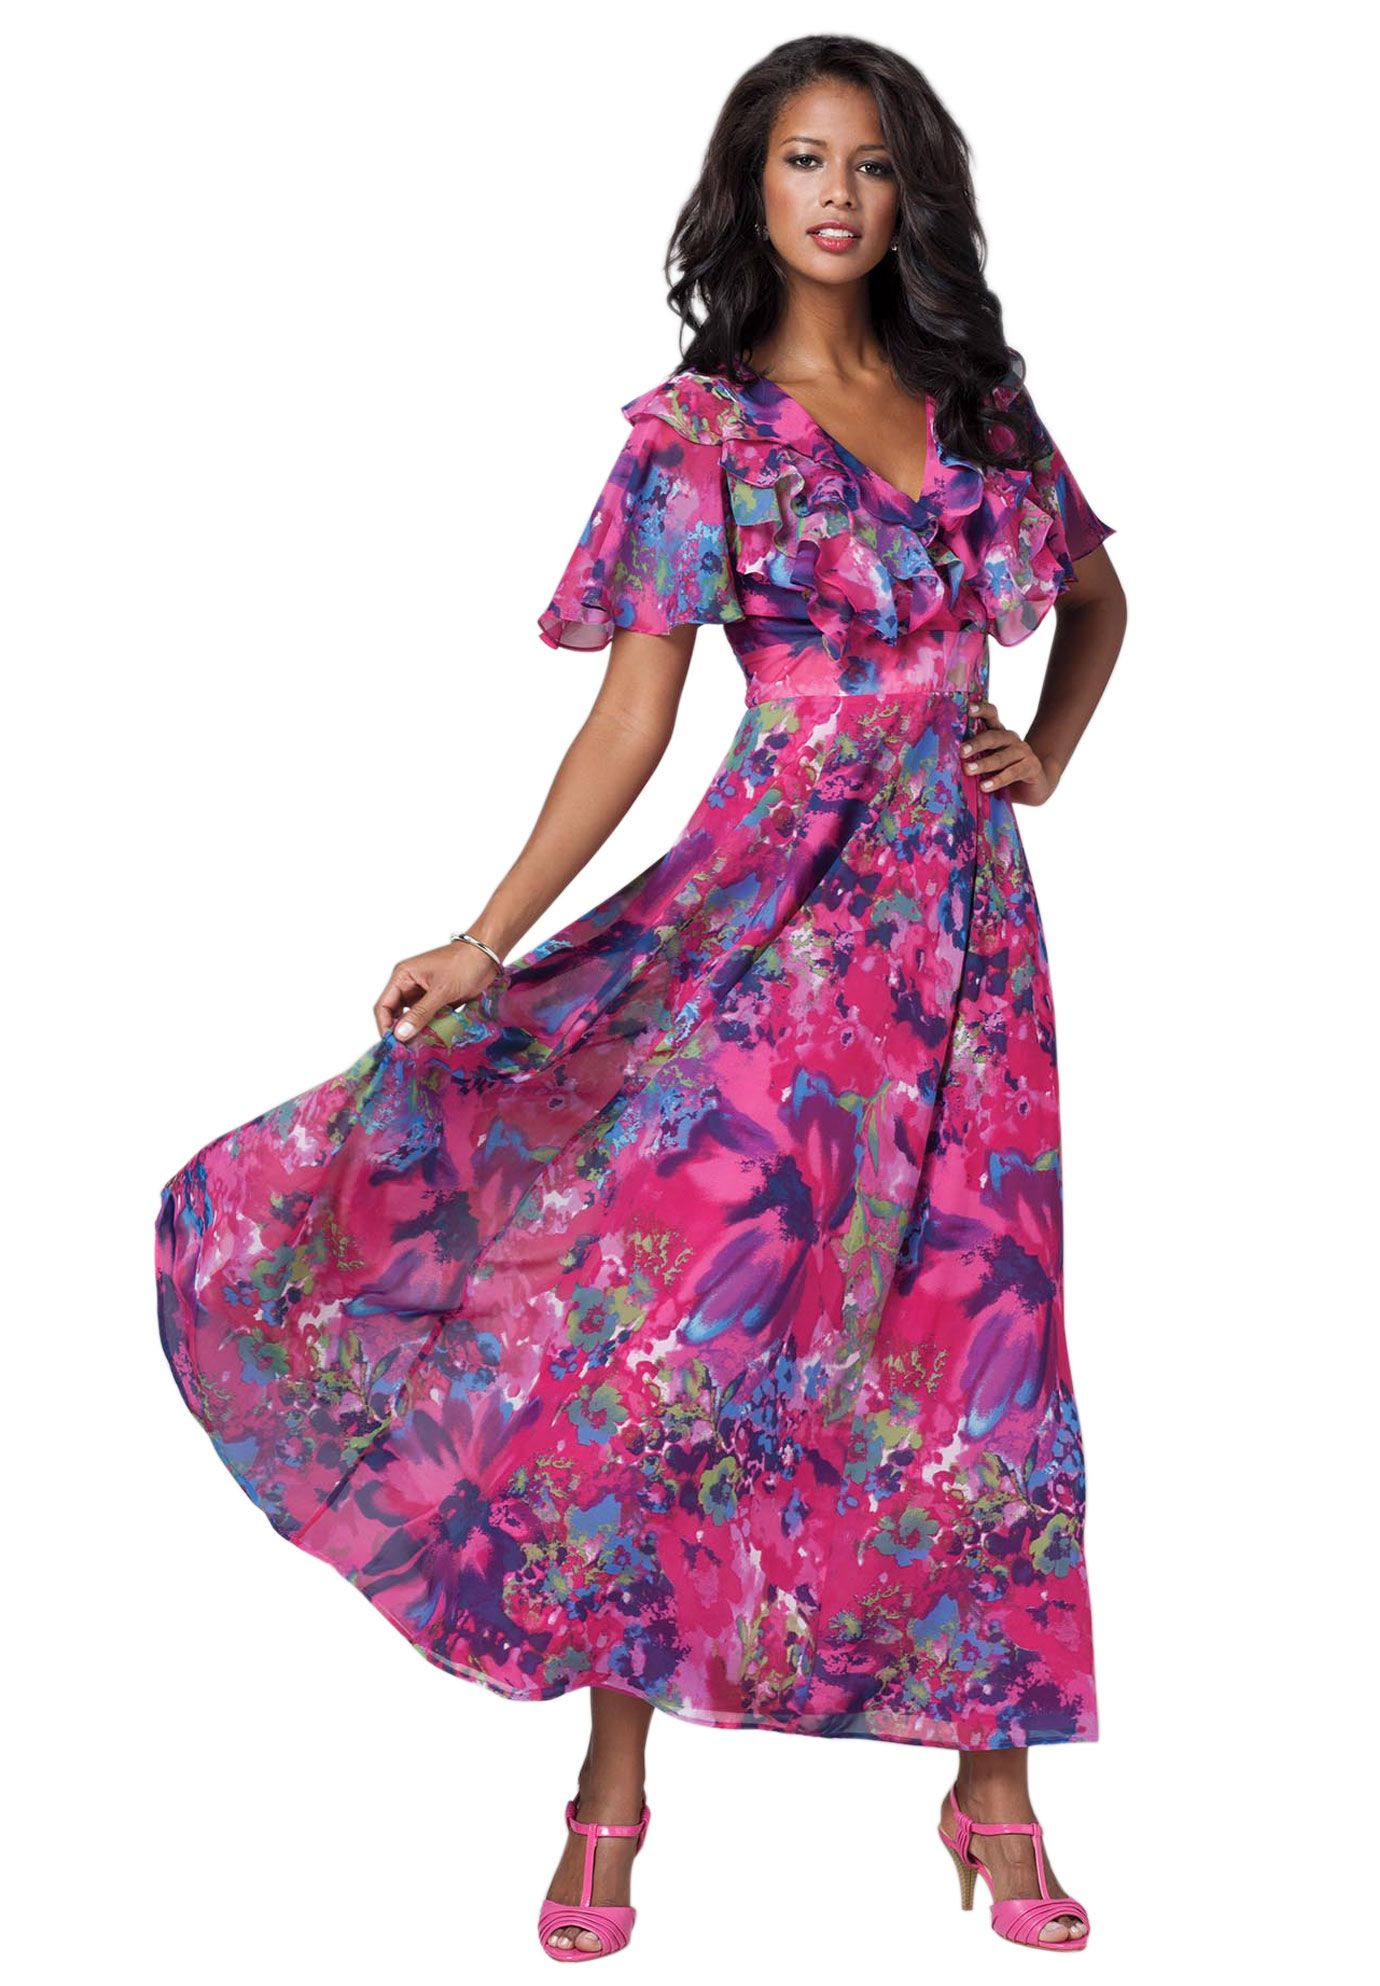 Empire Floral Print Gown Plus Size Dresses And Skirts Roamans